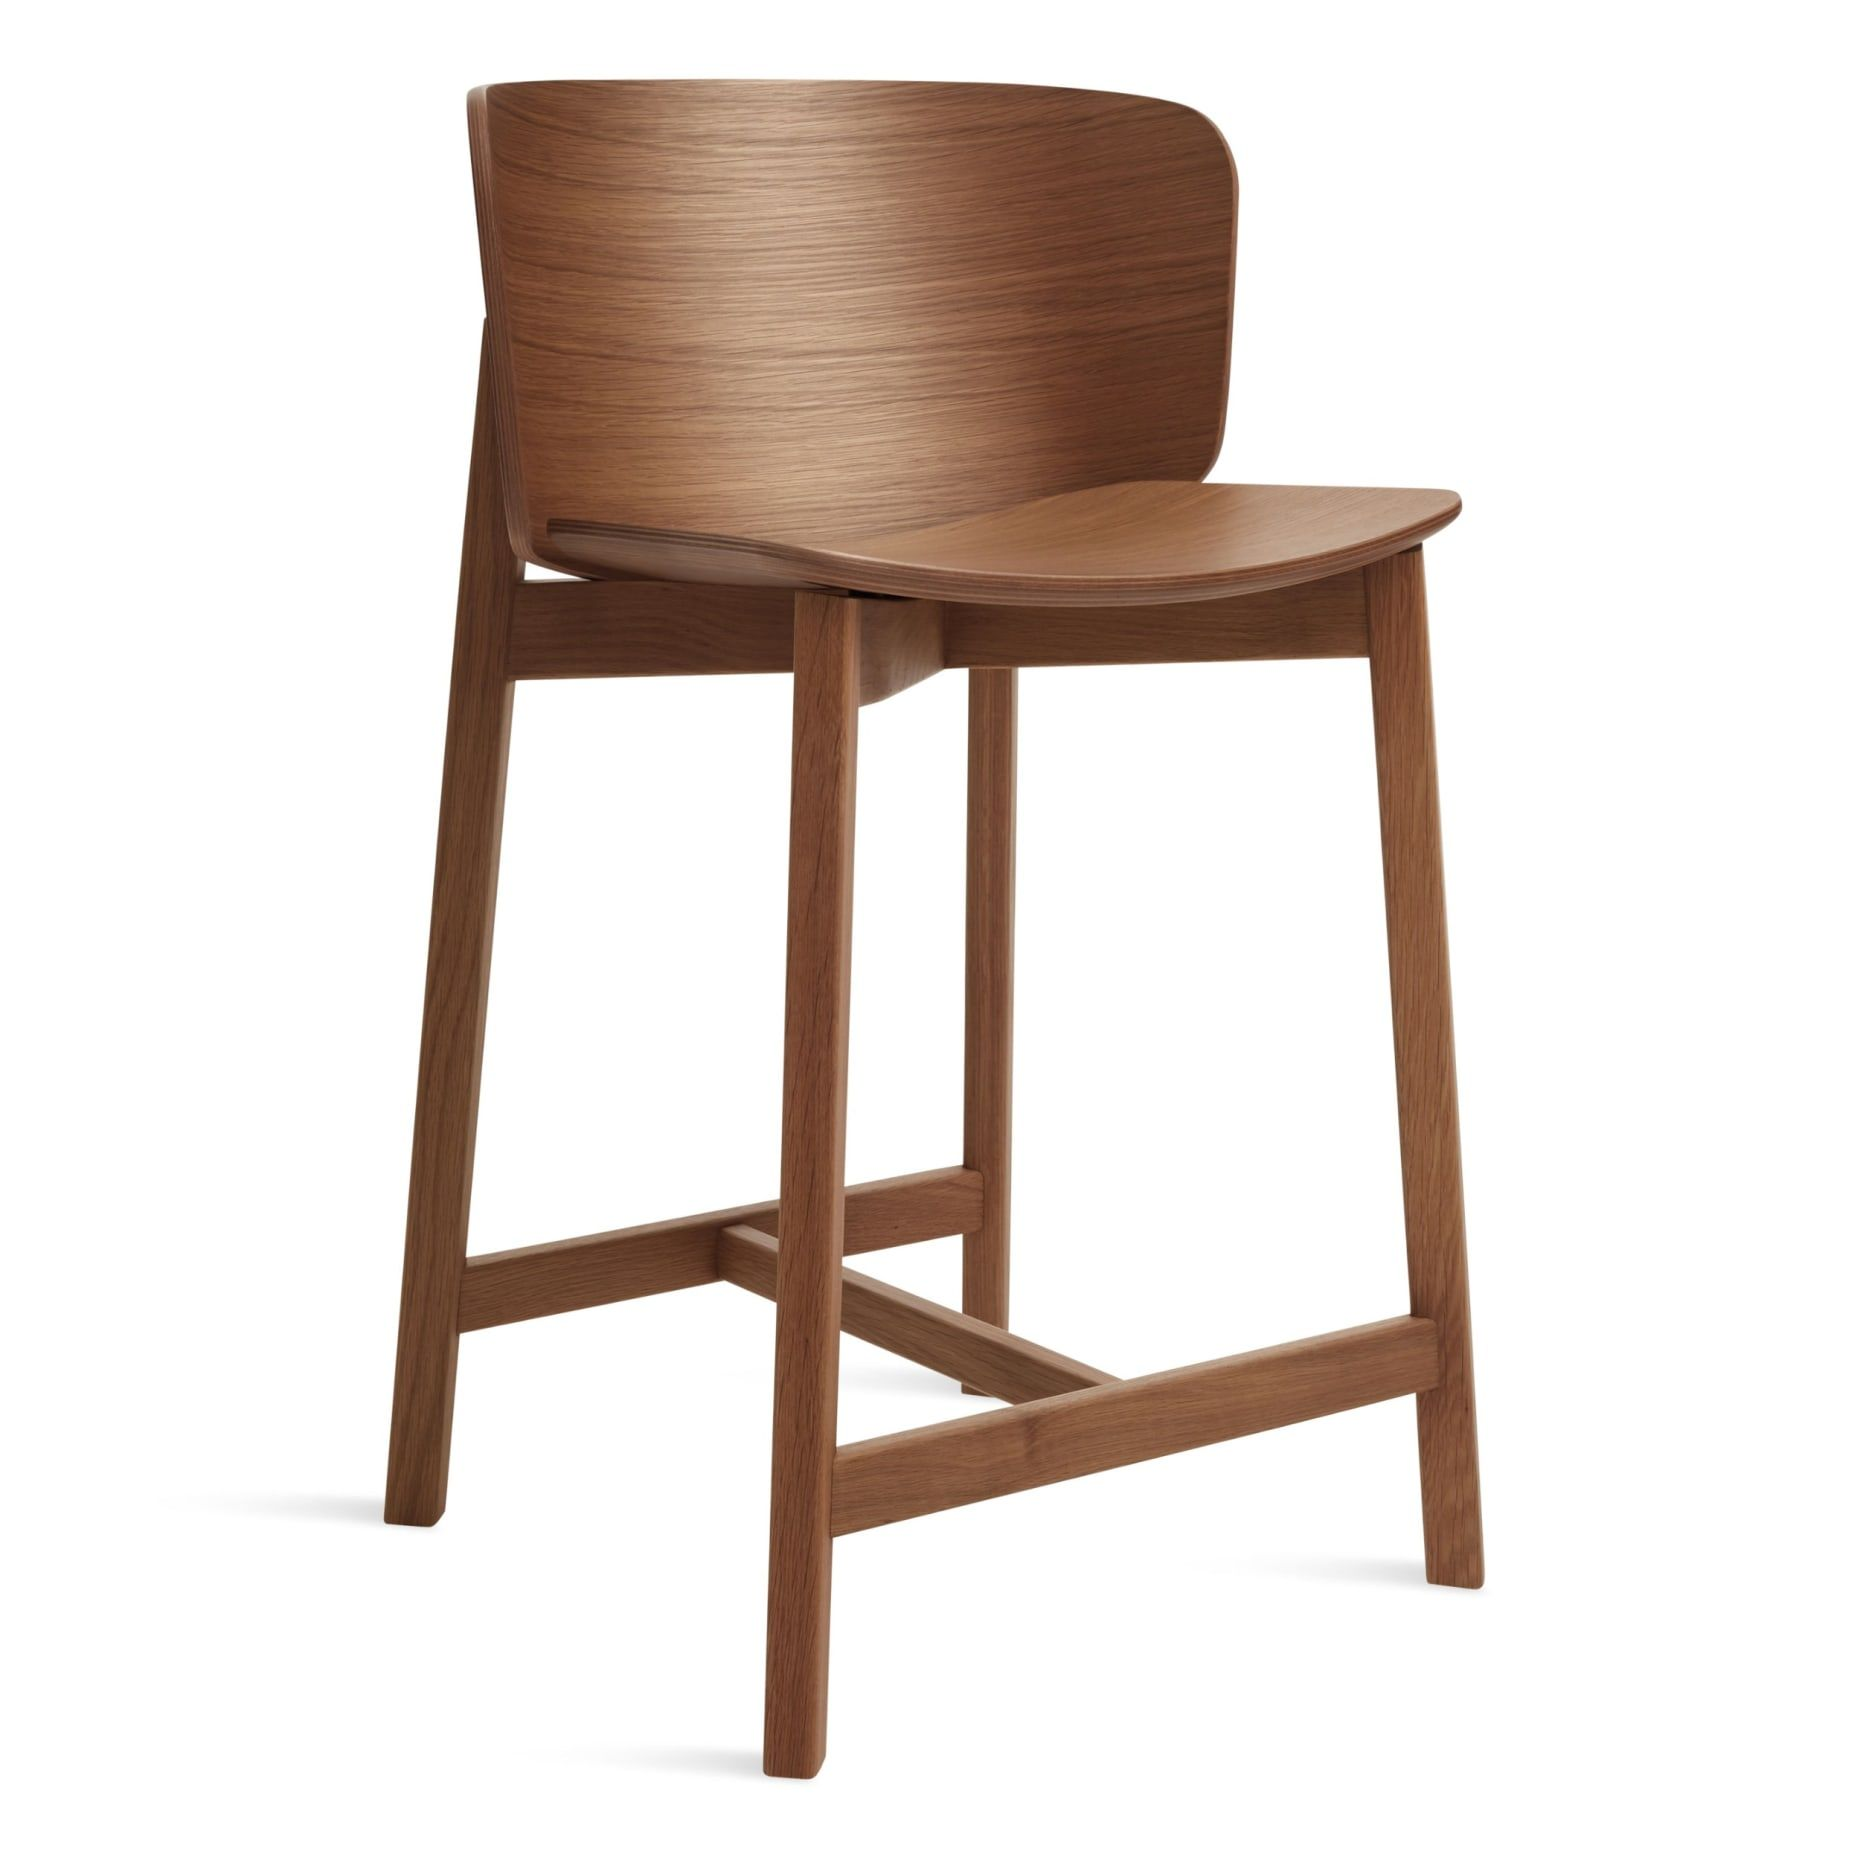 Buddy Counter Stool Counter Stools Modern Wood Dining Chair Stool